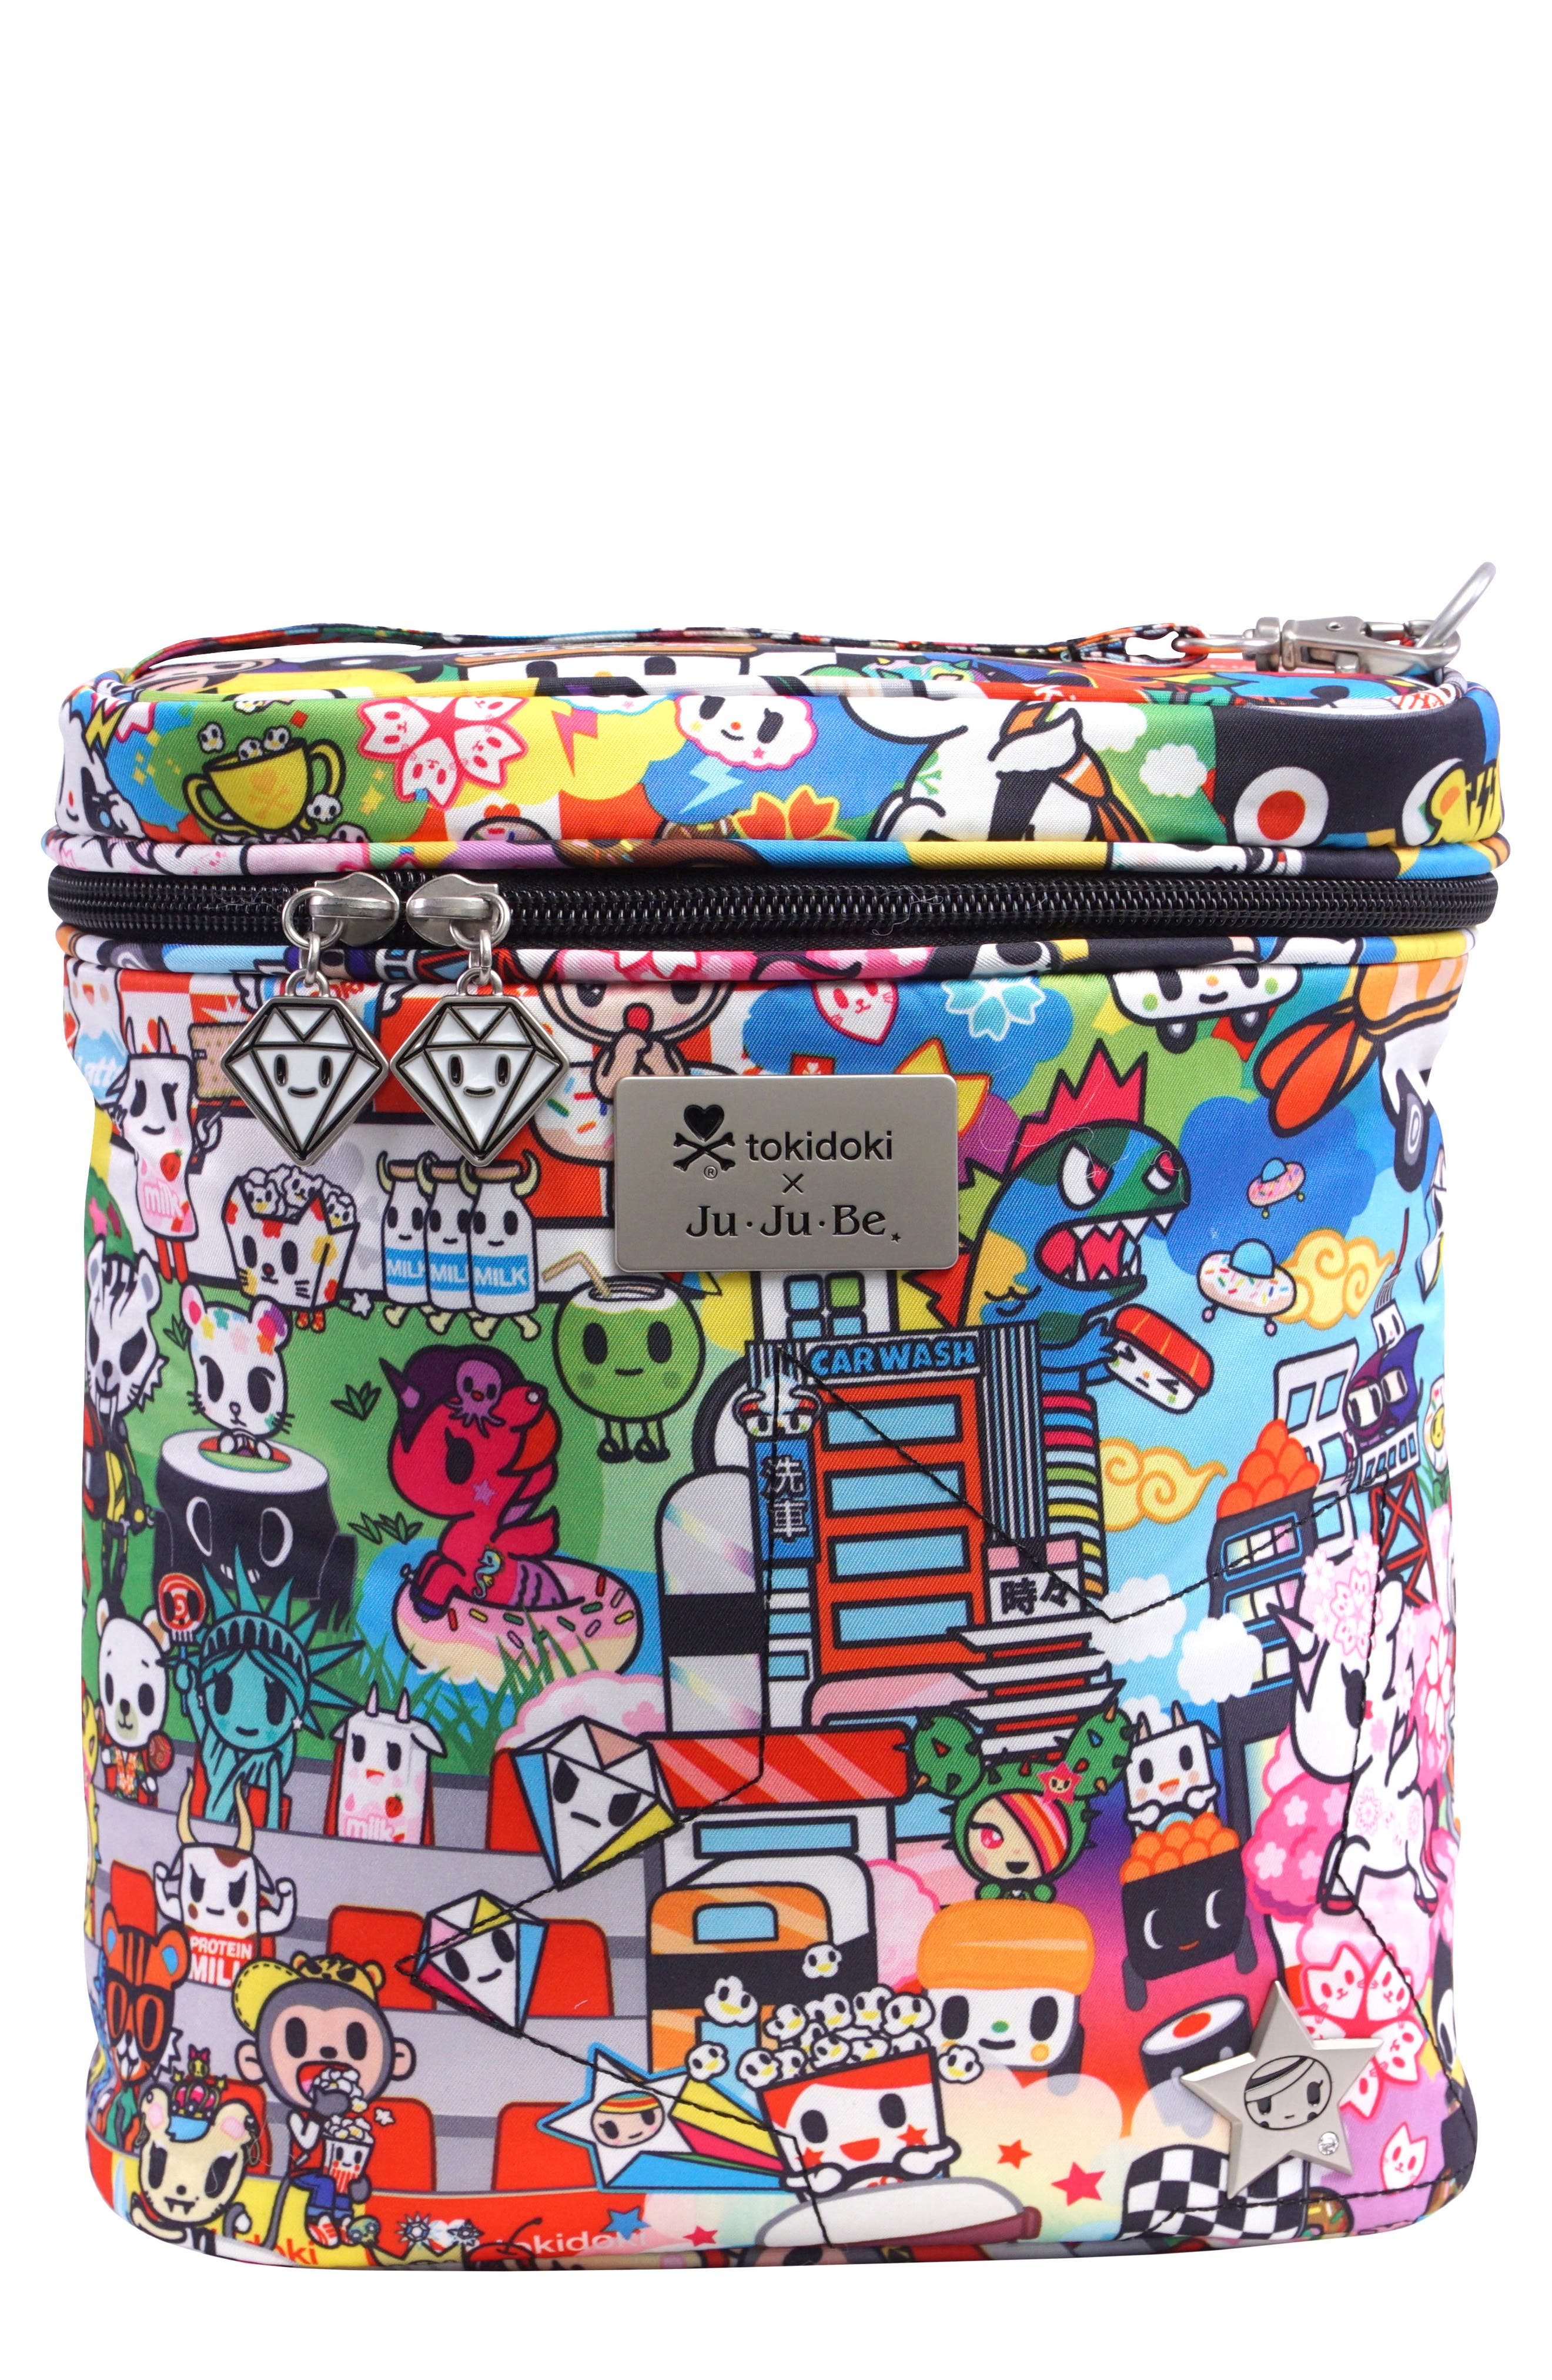 tokidoki x Ju-Ju-Be 'Fuel Cell' Lunch Bag,                             Main thumbnail 1, color,                             100